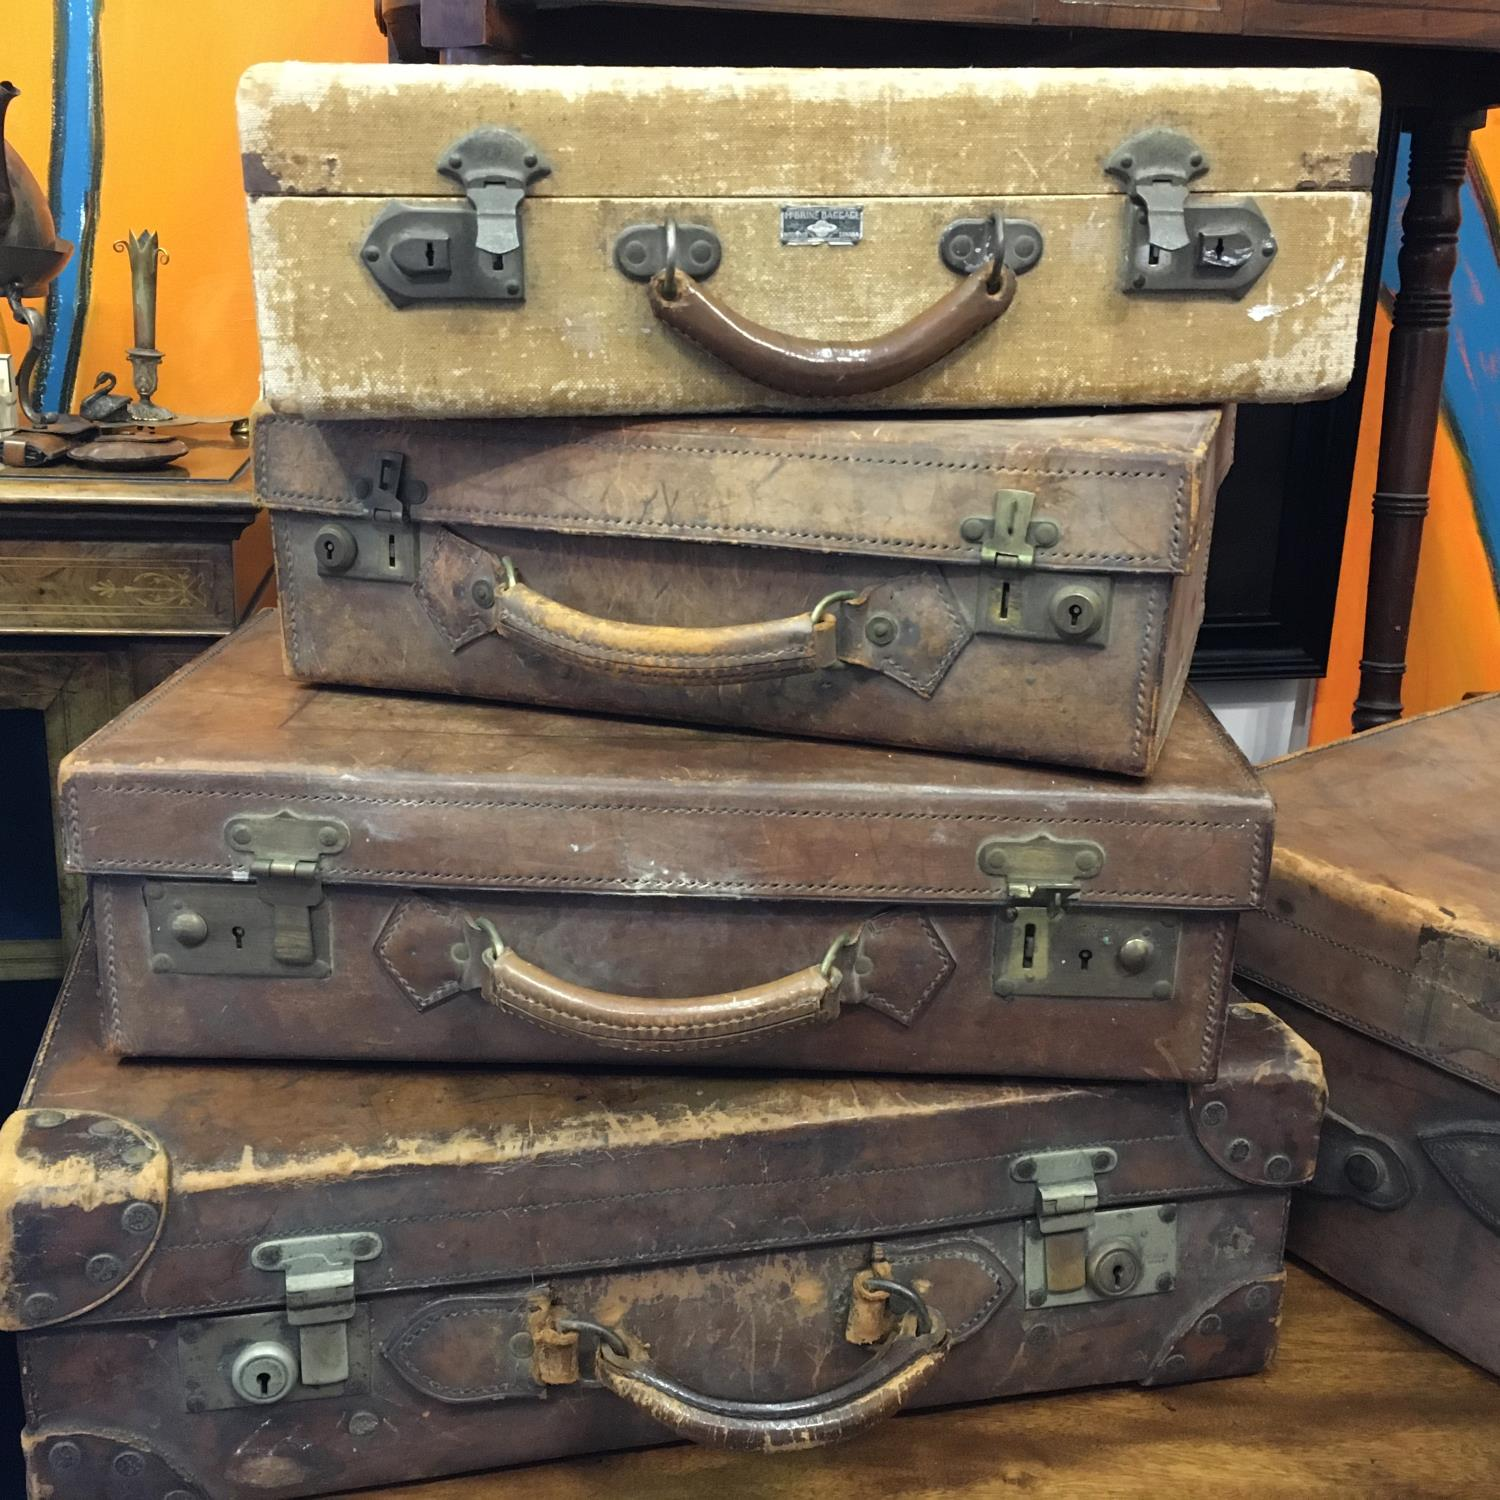 4 x matching antique leather suitcases of graduating size in what appears to be a set of 4, and 1 - Image 2 of 9